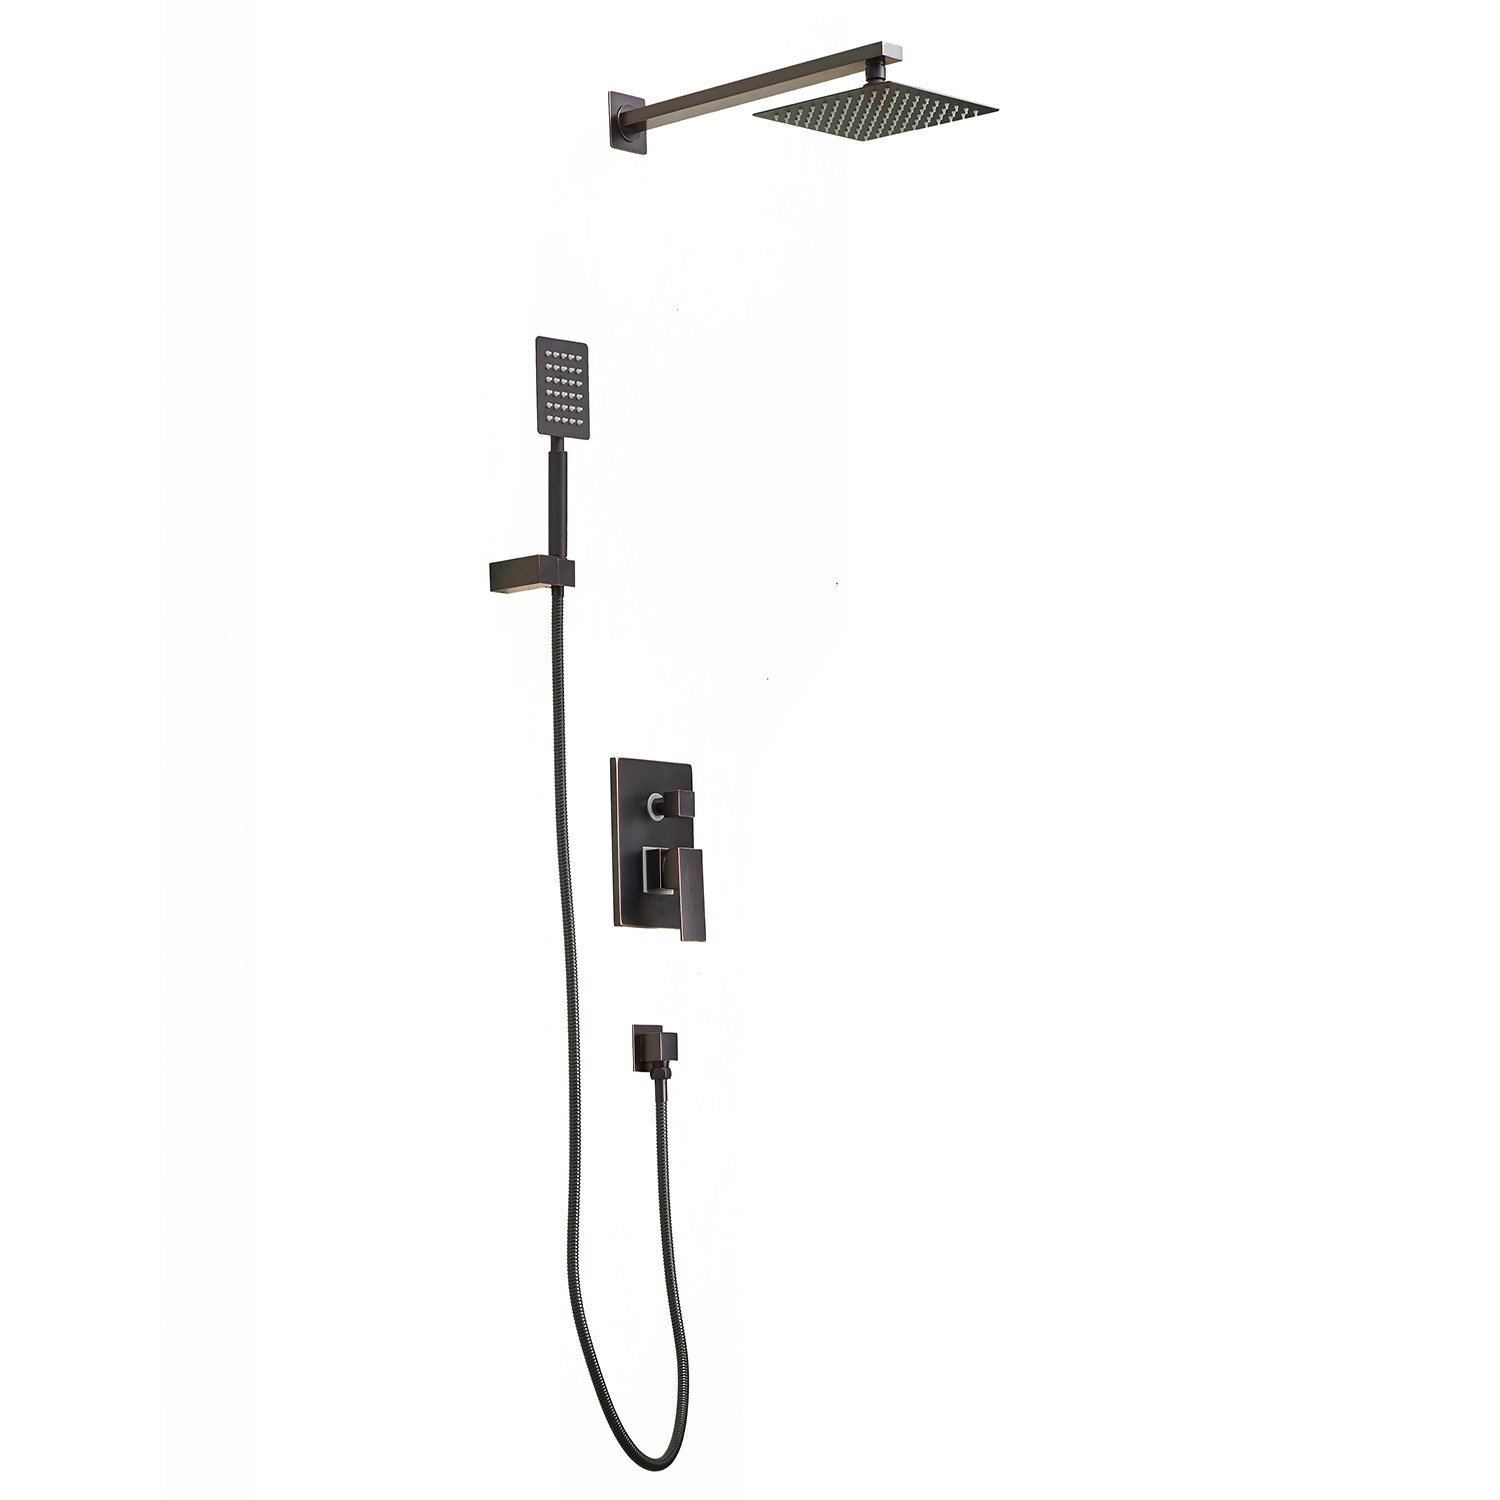 Cheap Rain Shower Head Bronze Find Rain Shower Head Bronze